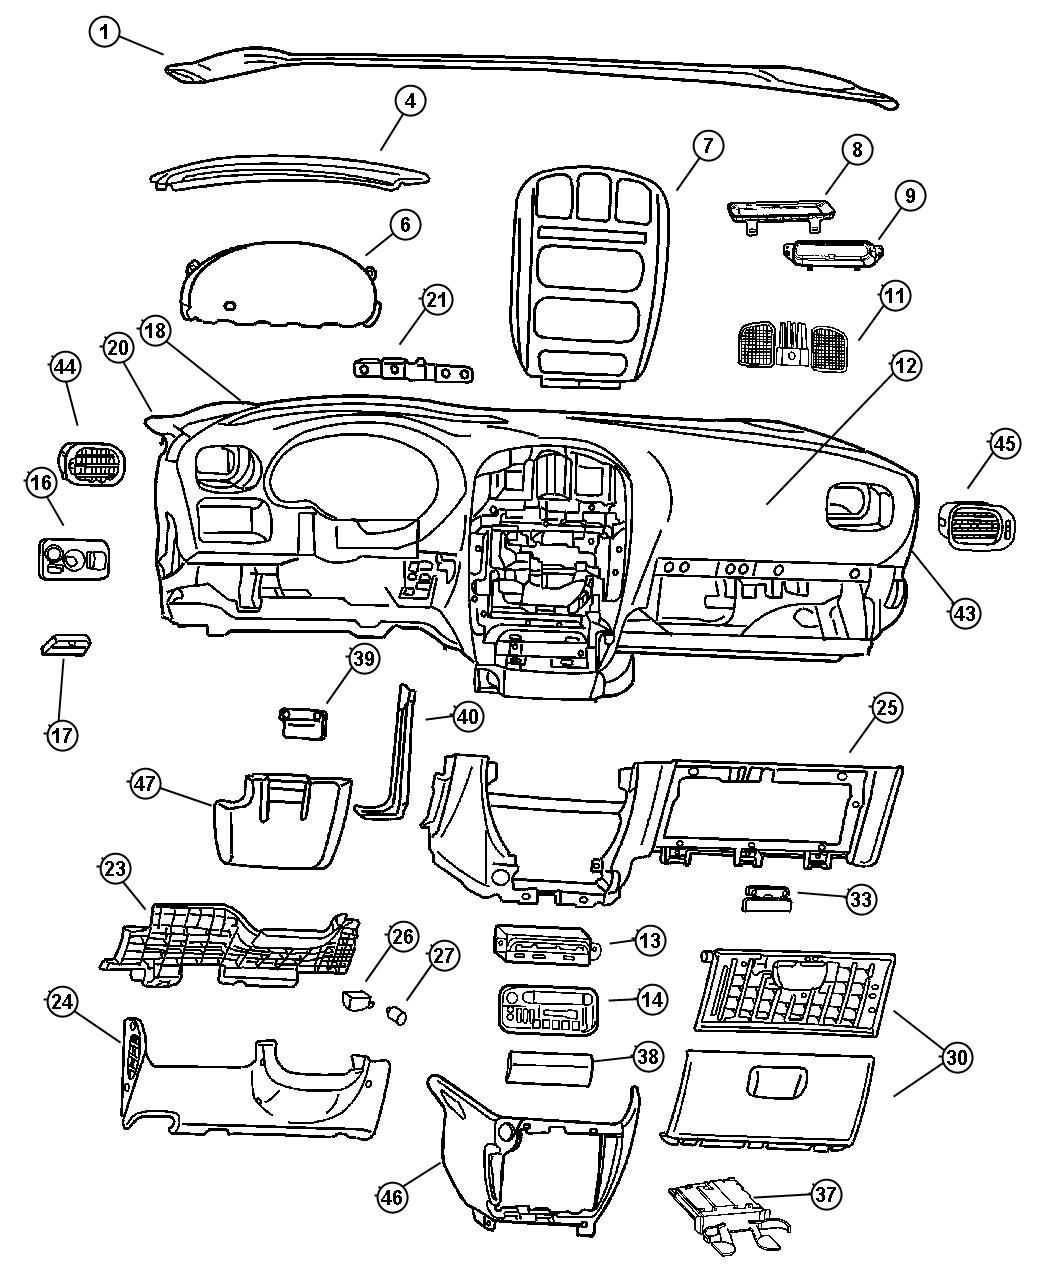 Service manual [2000 Chrysler Voyager Engine Diagram Or